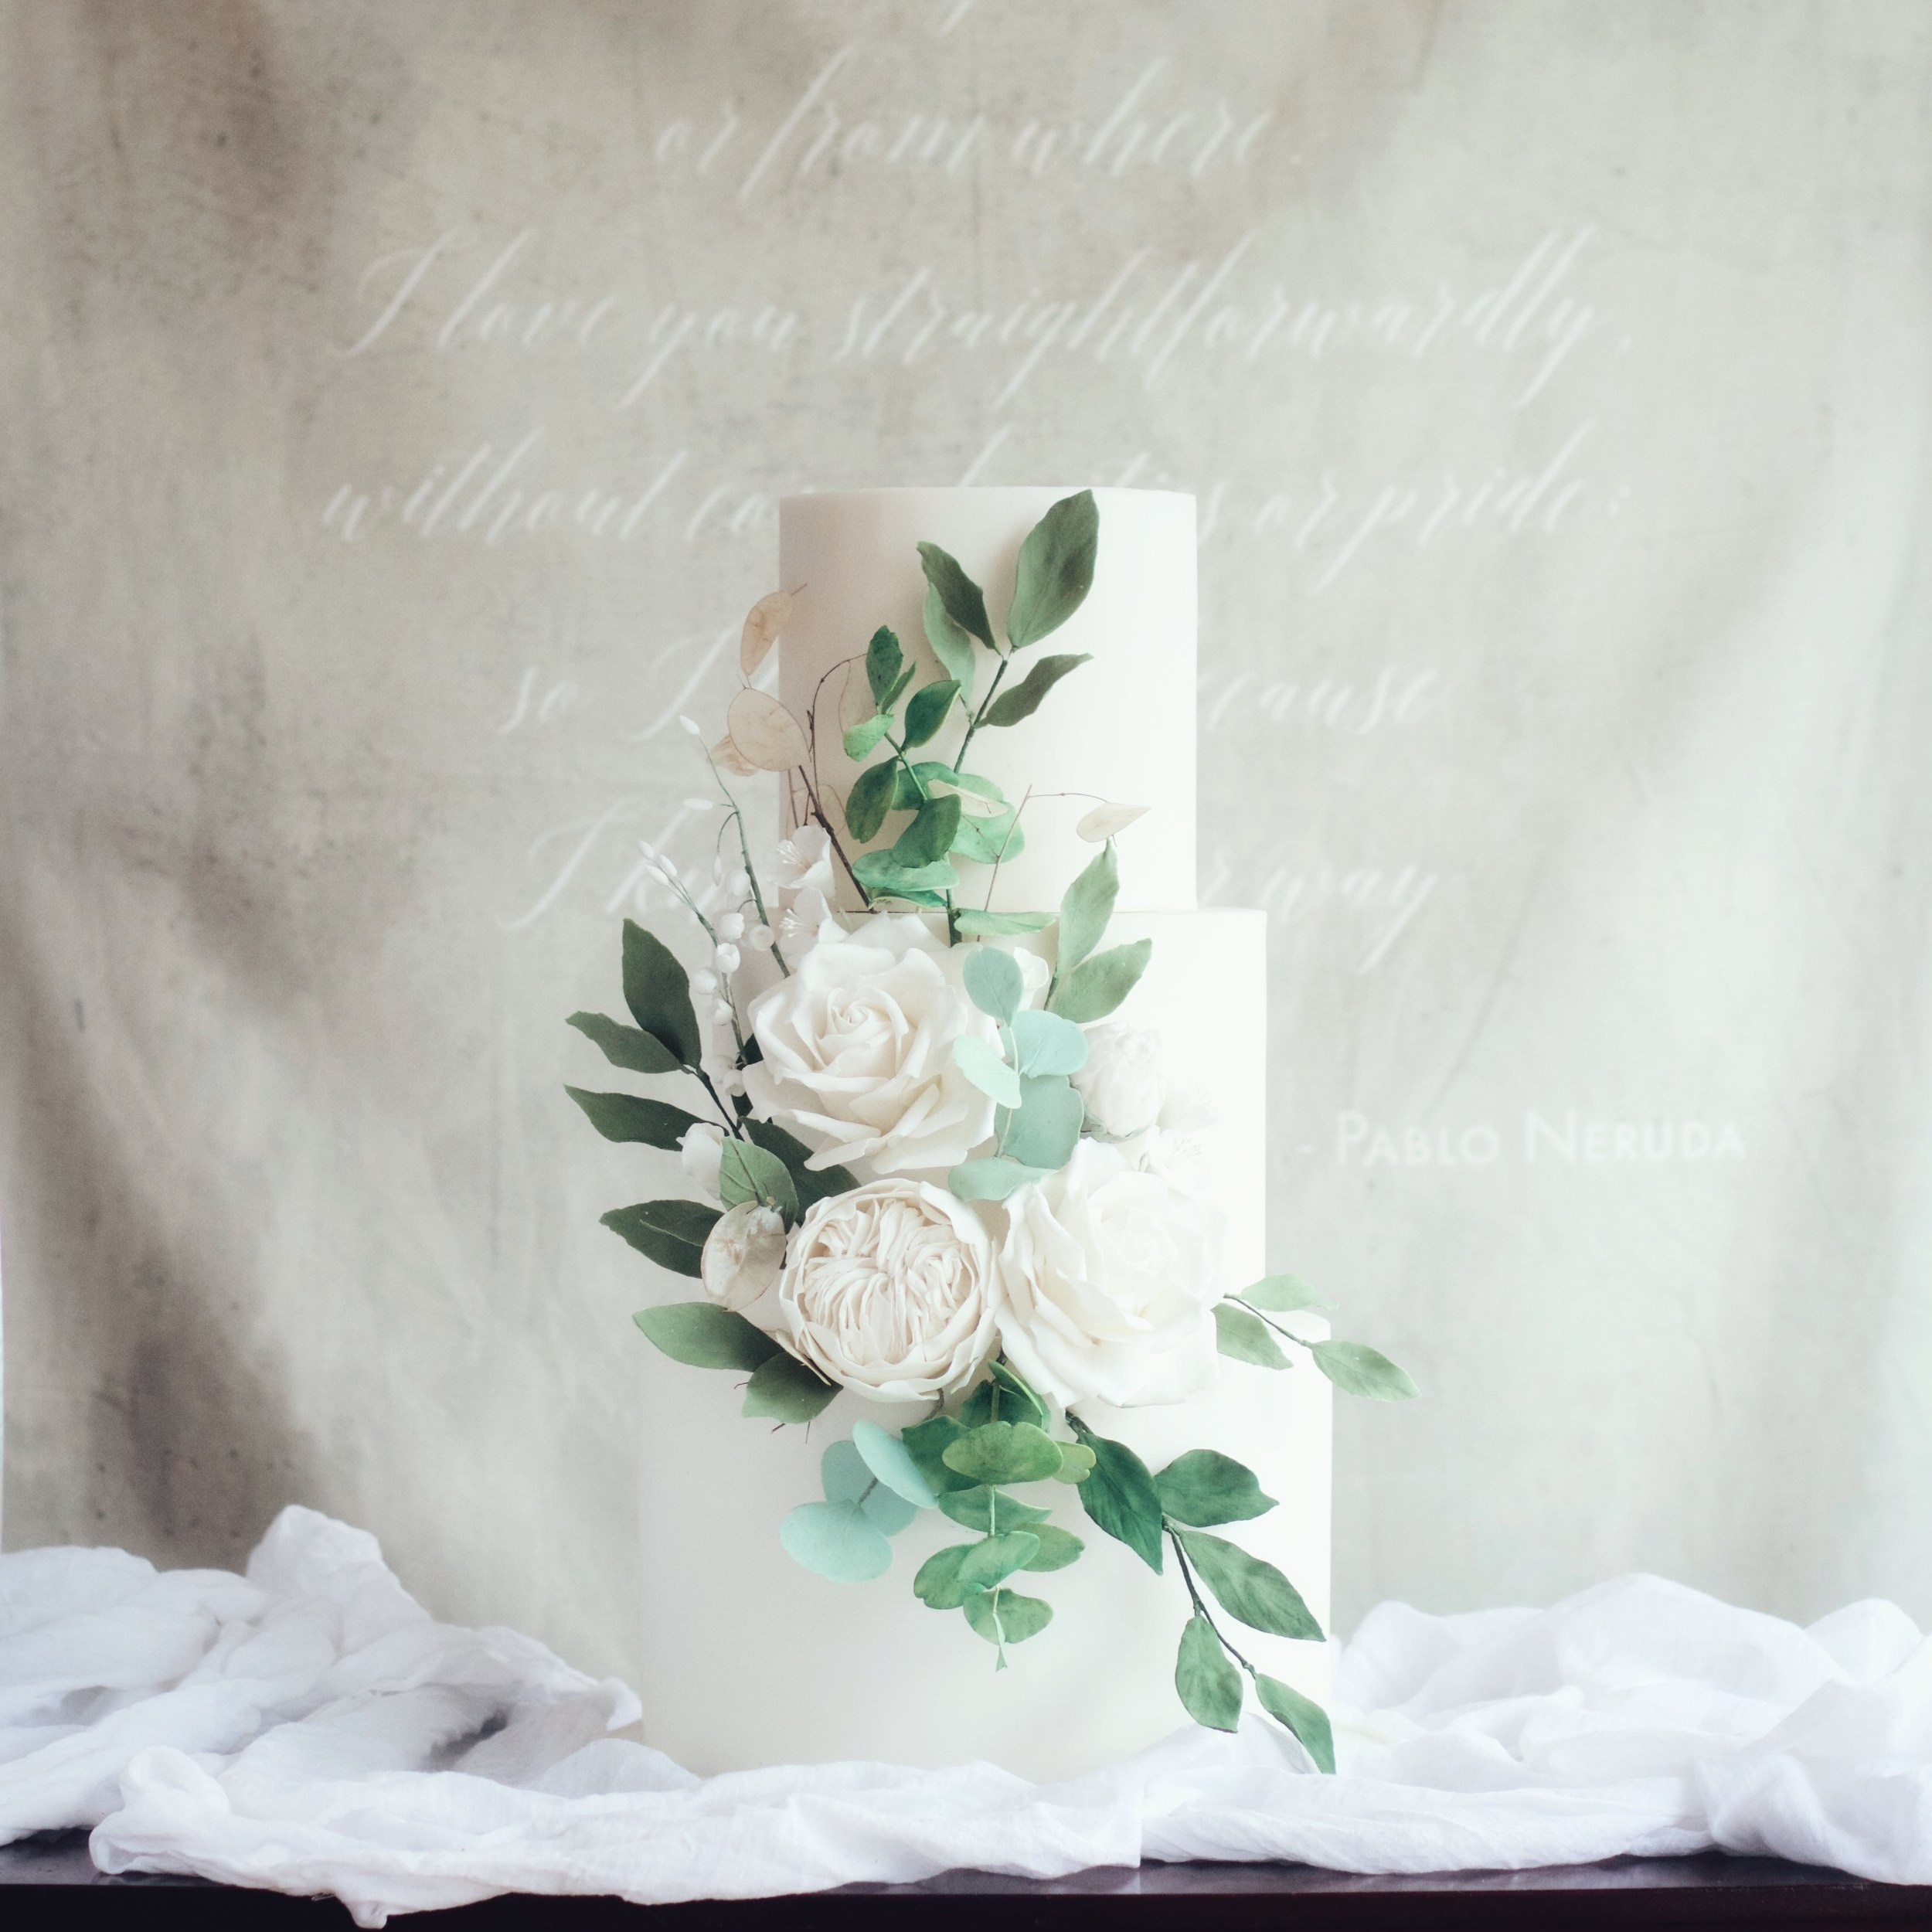 GREENERY  Main focus on trailing green foliage and flowers in neutral tones.